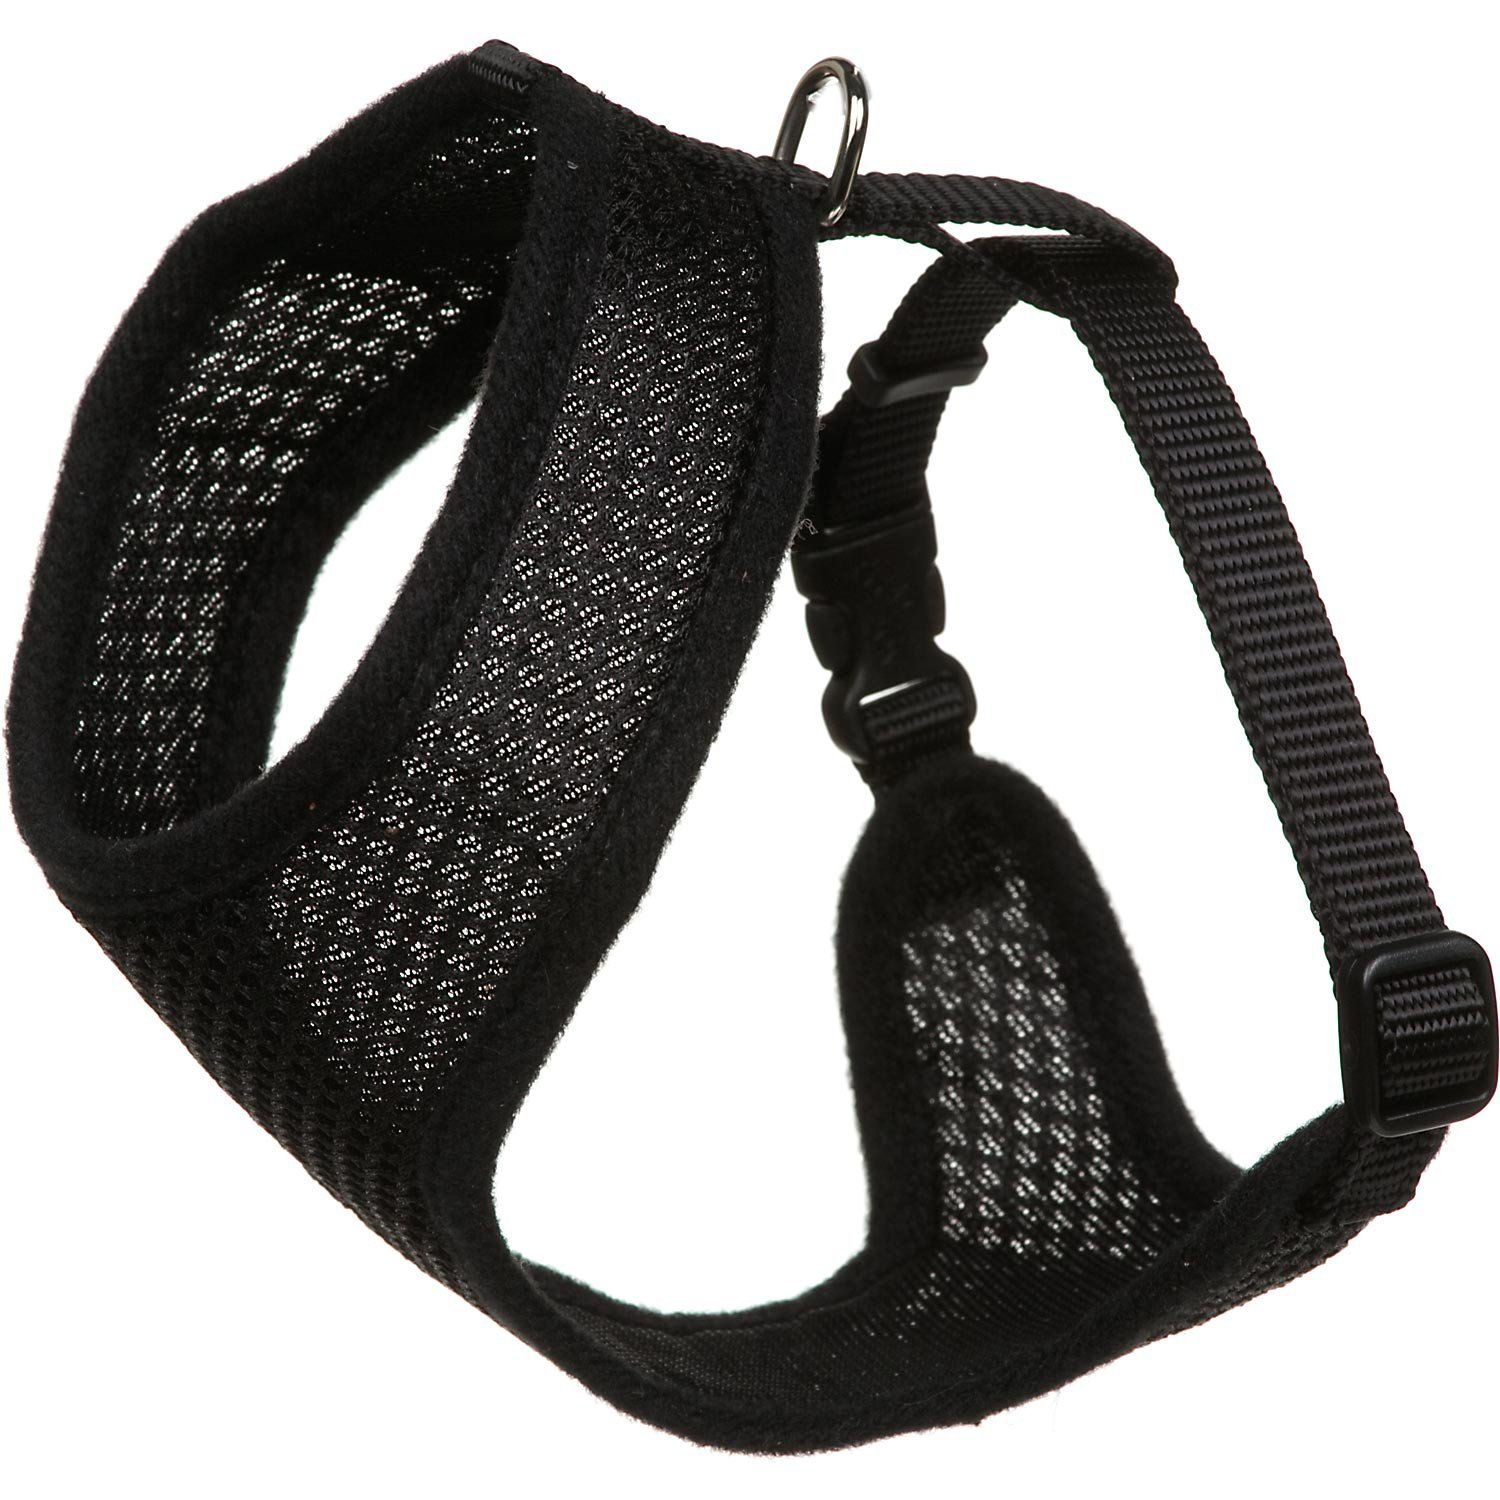 The Best Cat Harness 4